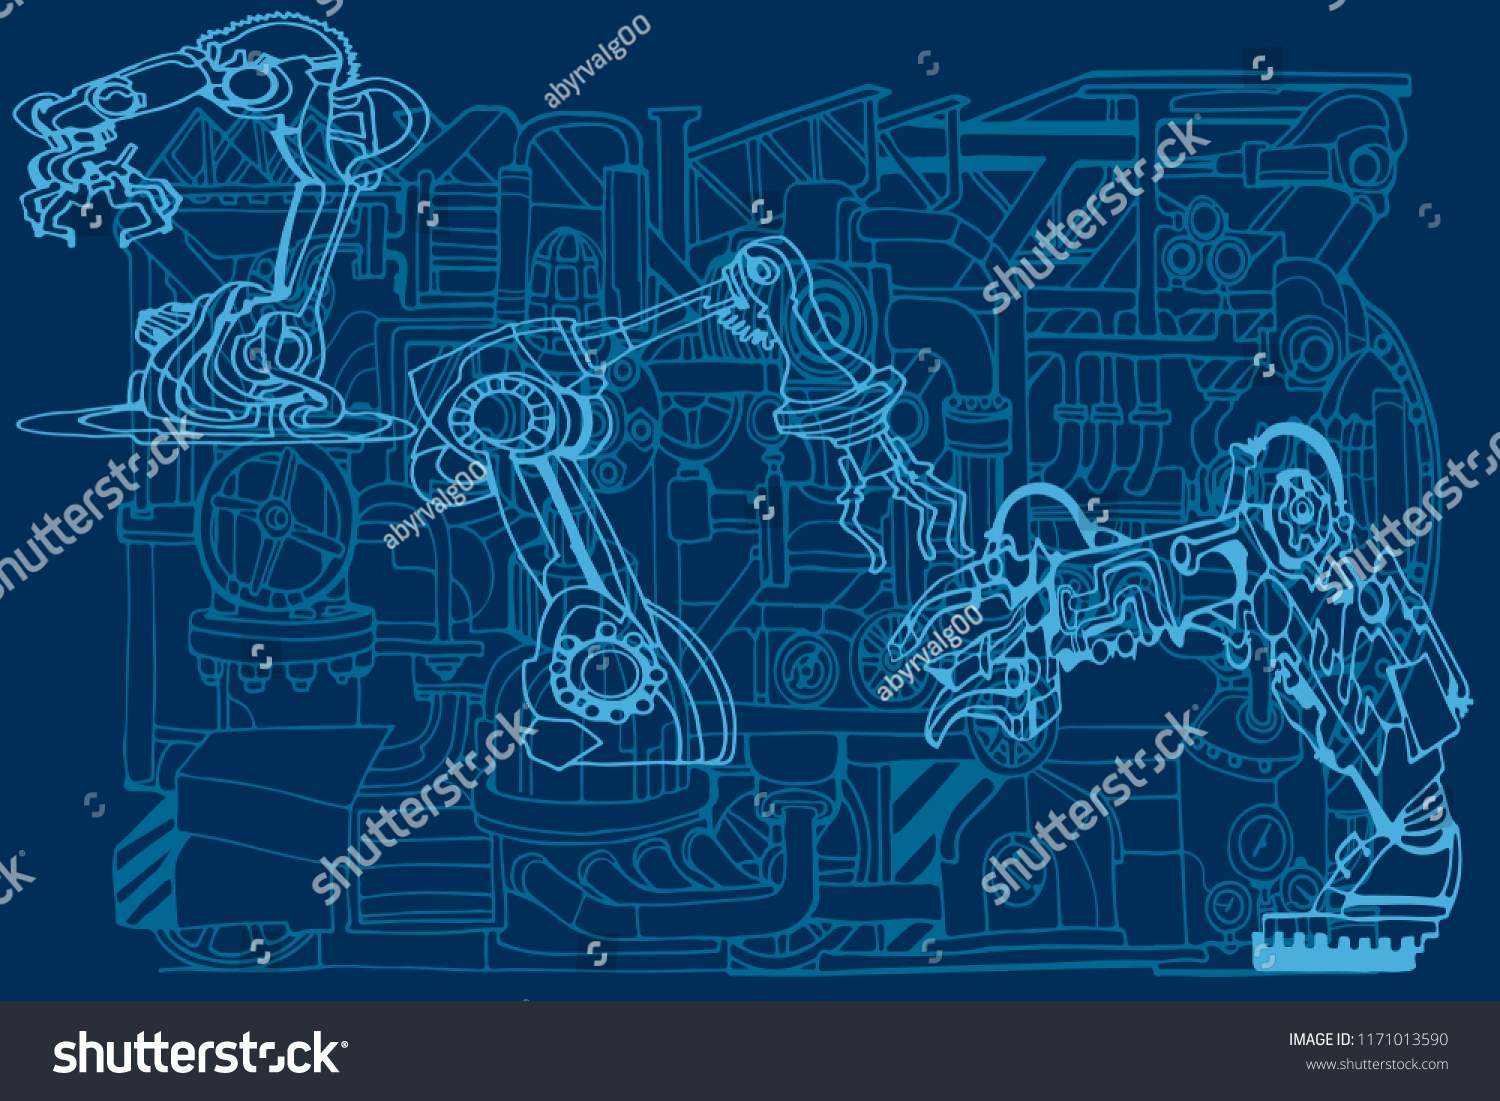 Vector Background Featuring Abstract Industry Robotics Stock Vector